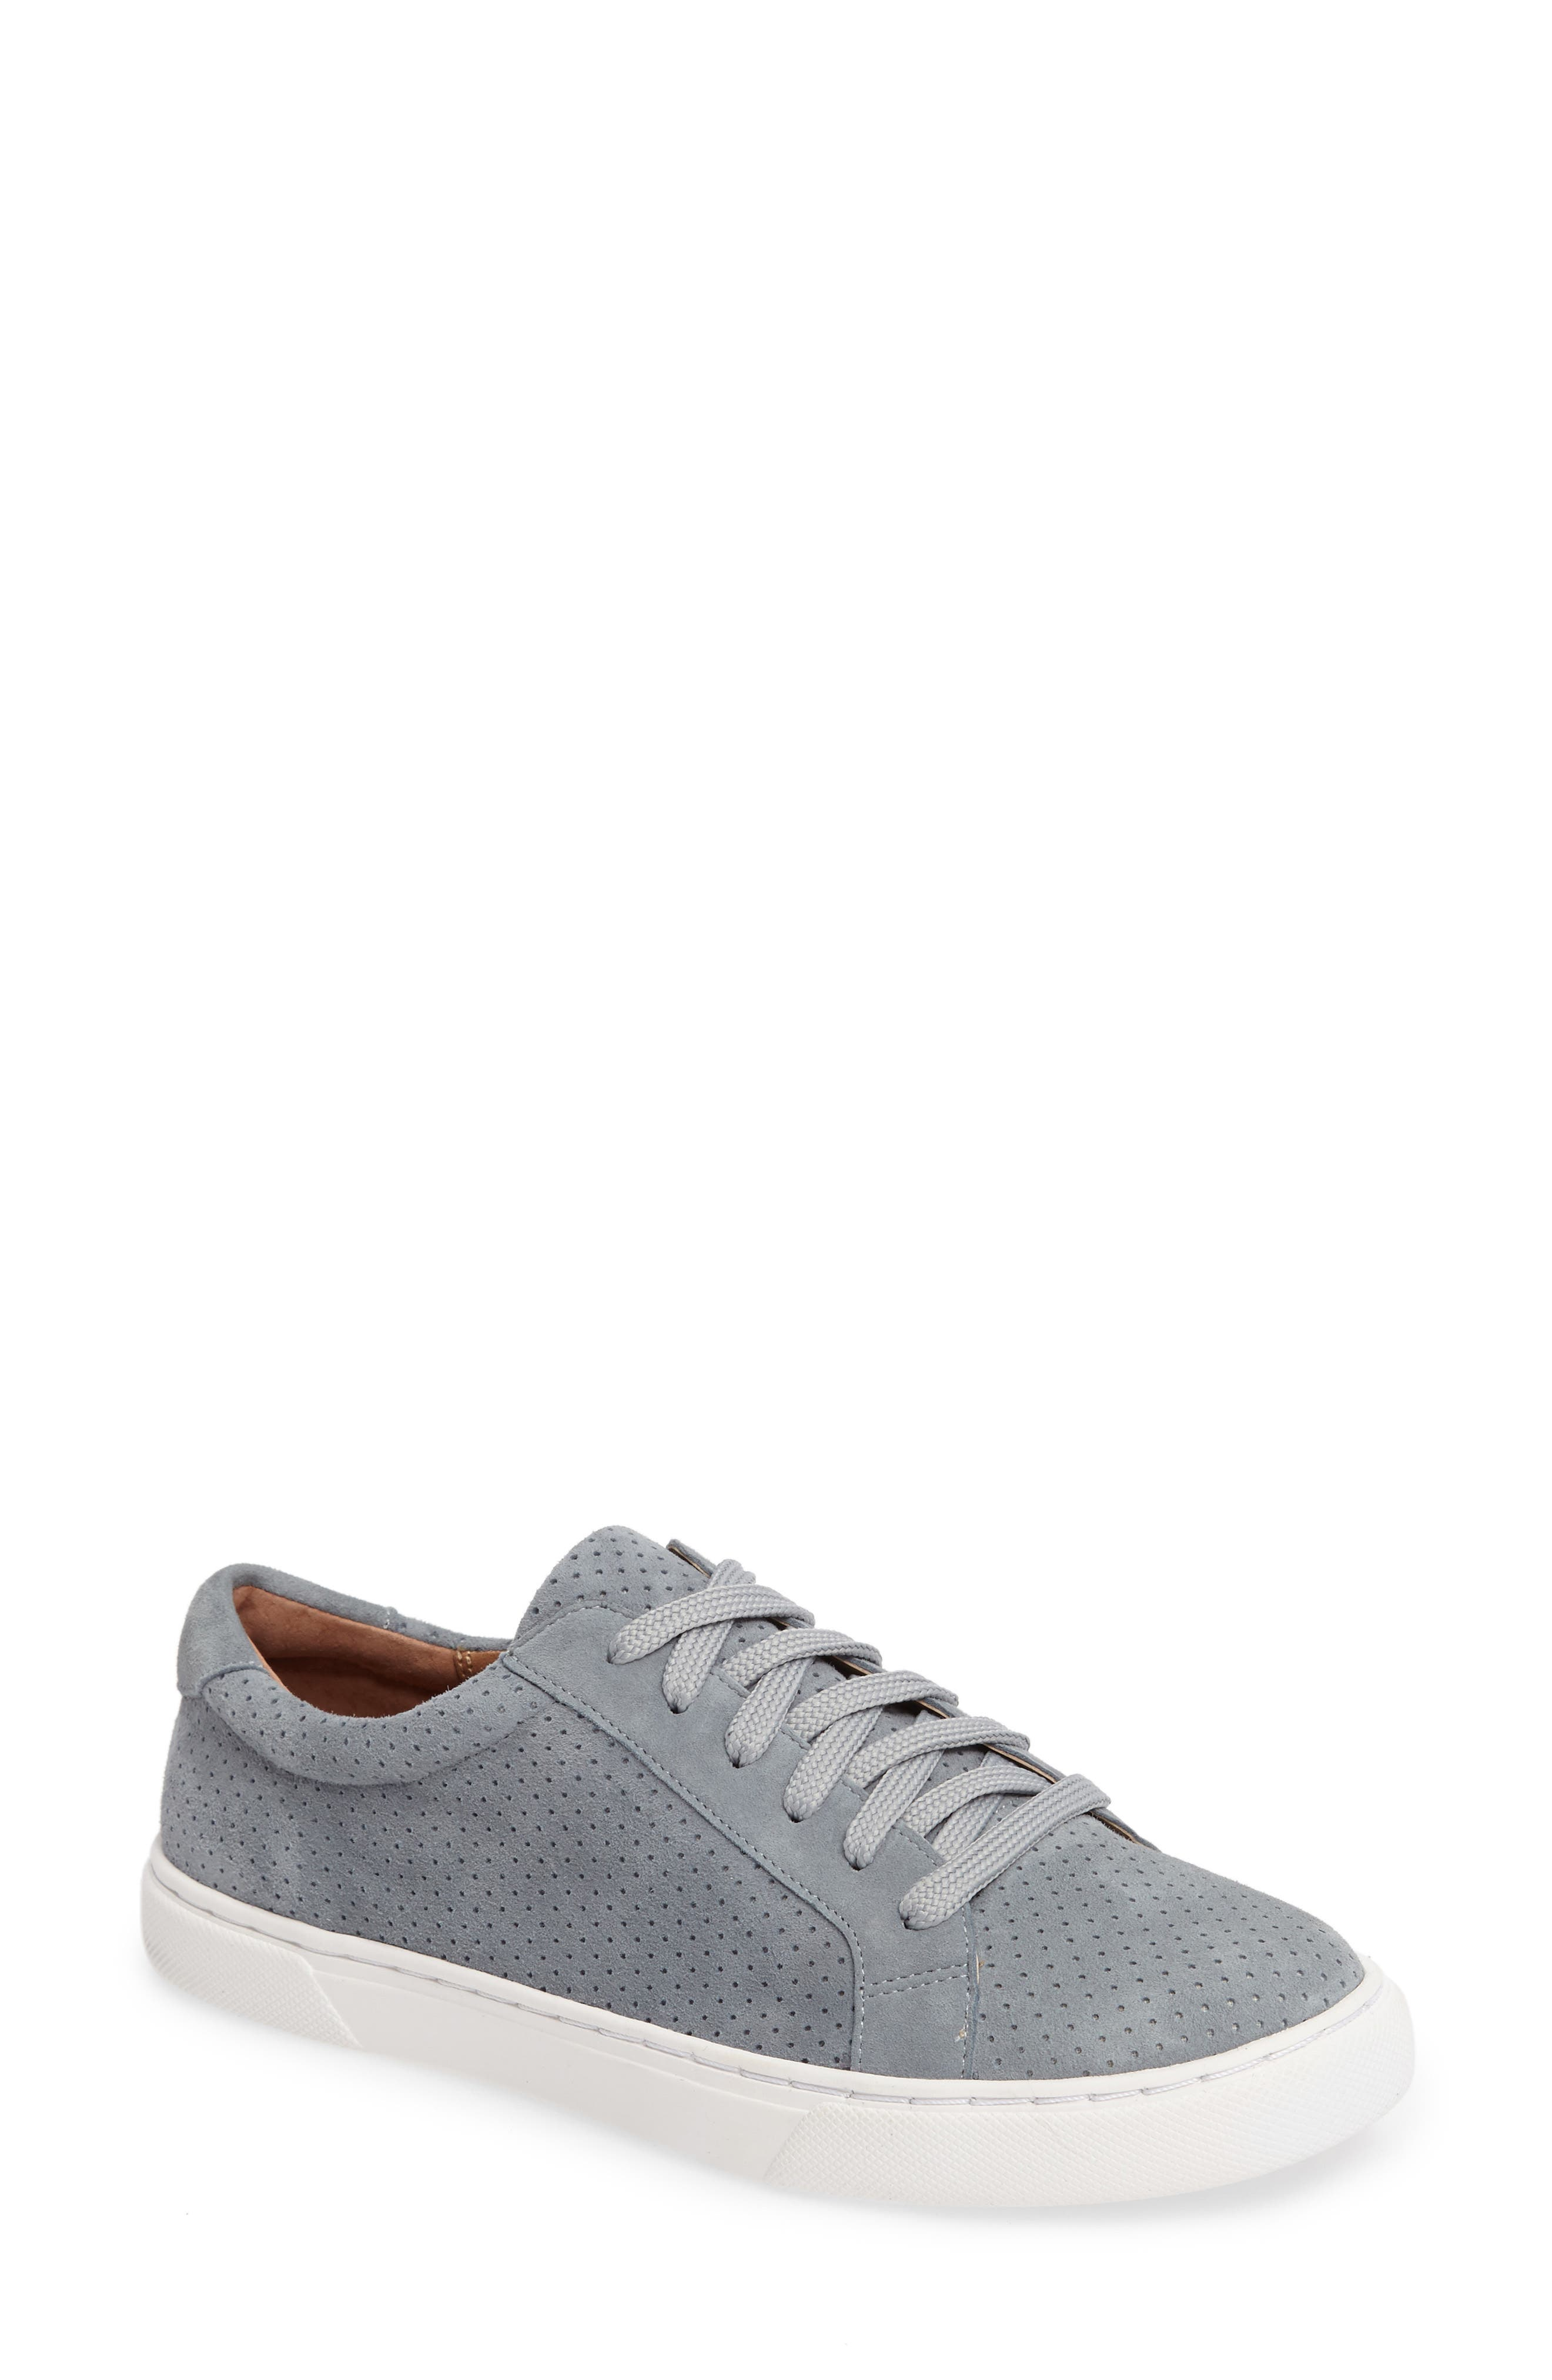 Main Image - Caslon® Cassie Perforated Sneaker (Women)